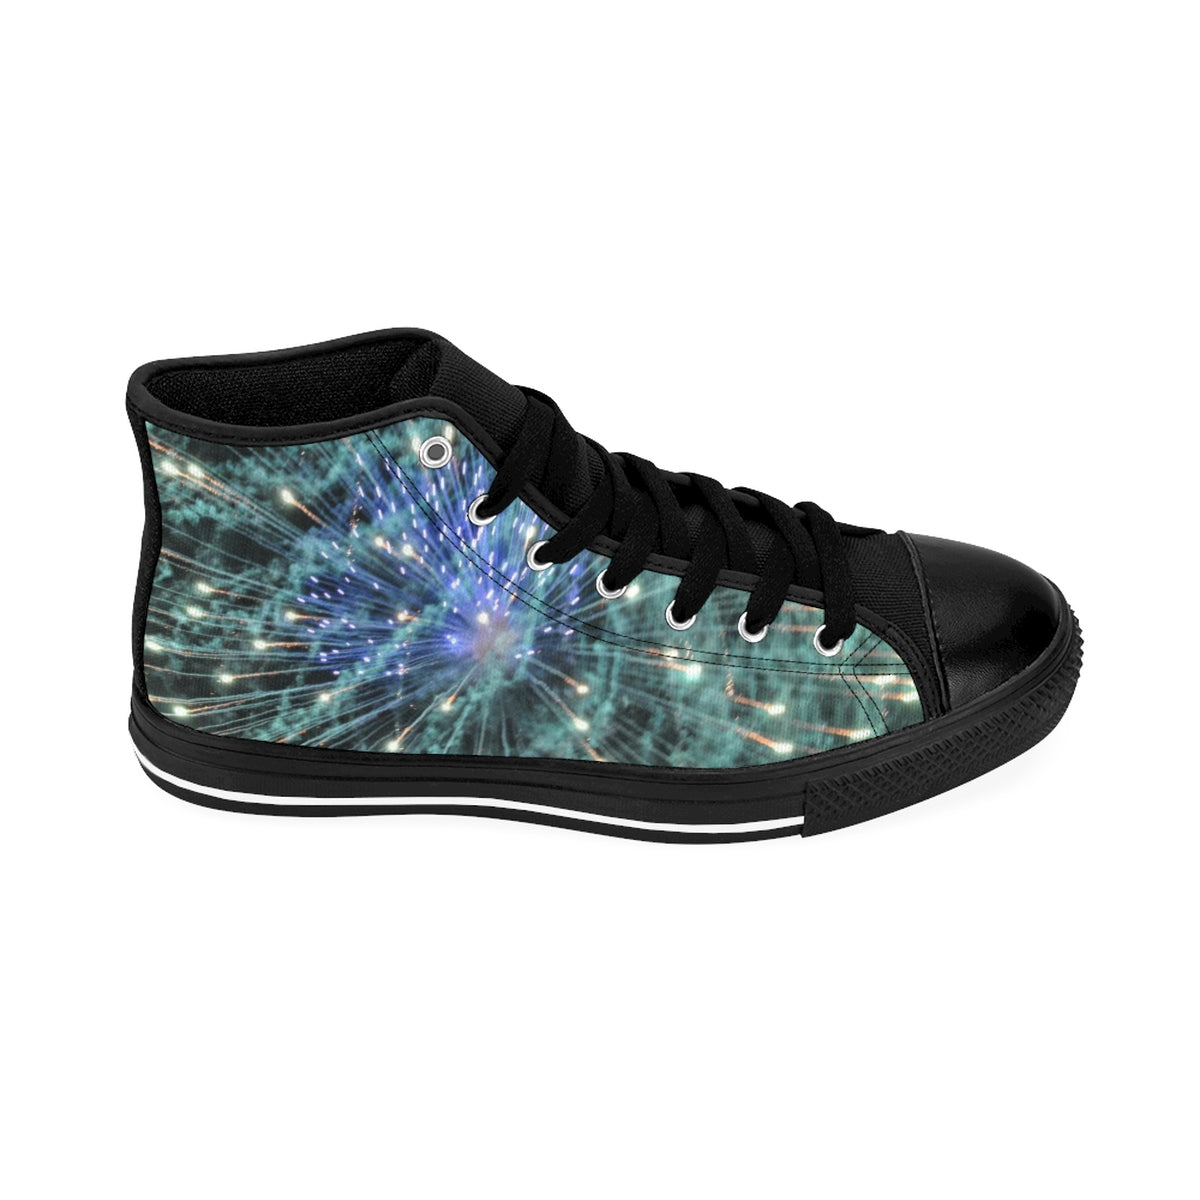 Fireworks 2 Men's High-top Sneakers (order one size larger than needed)